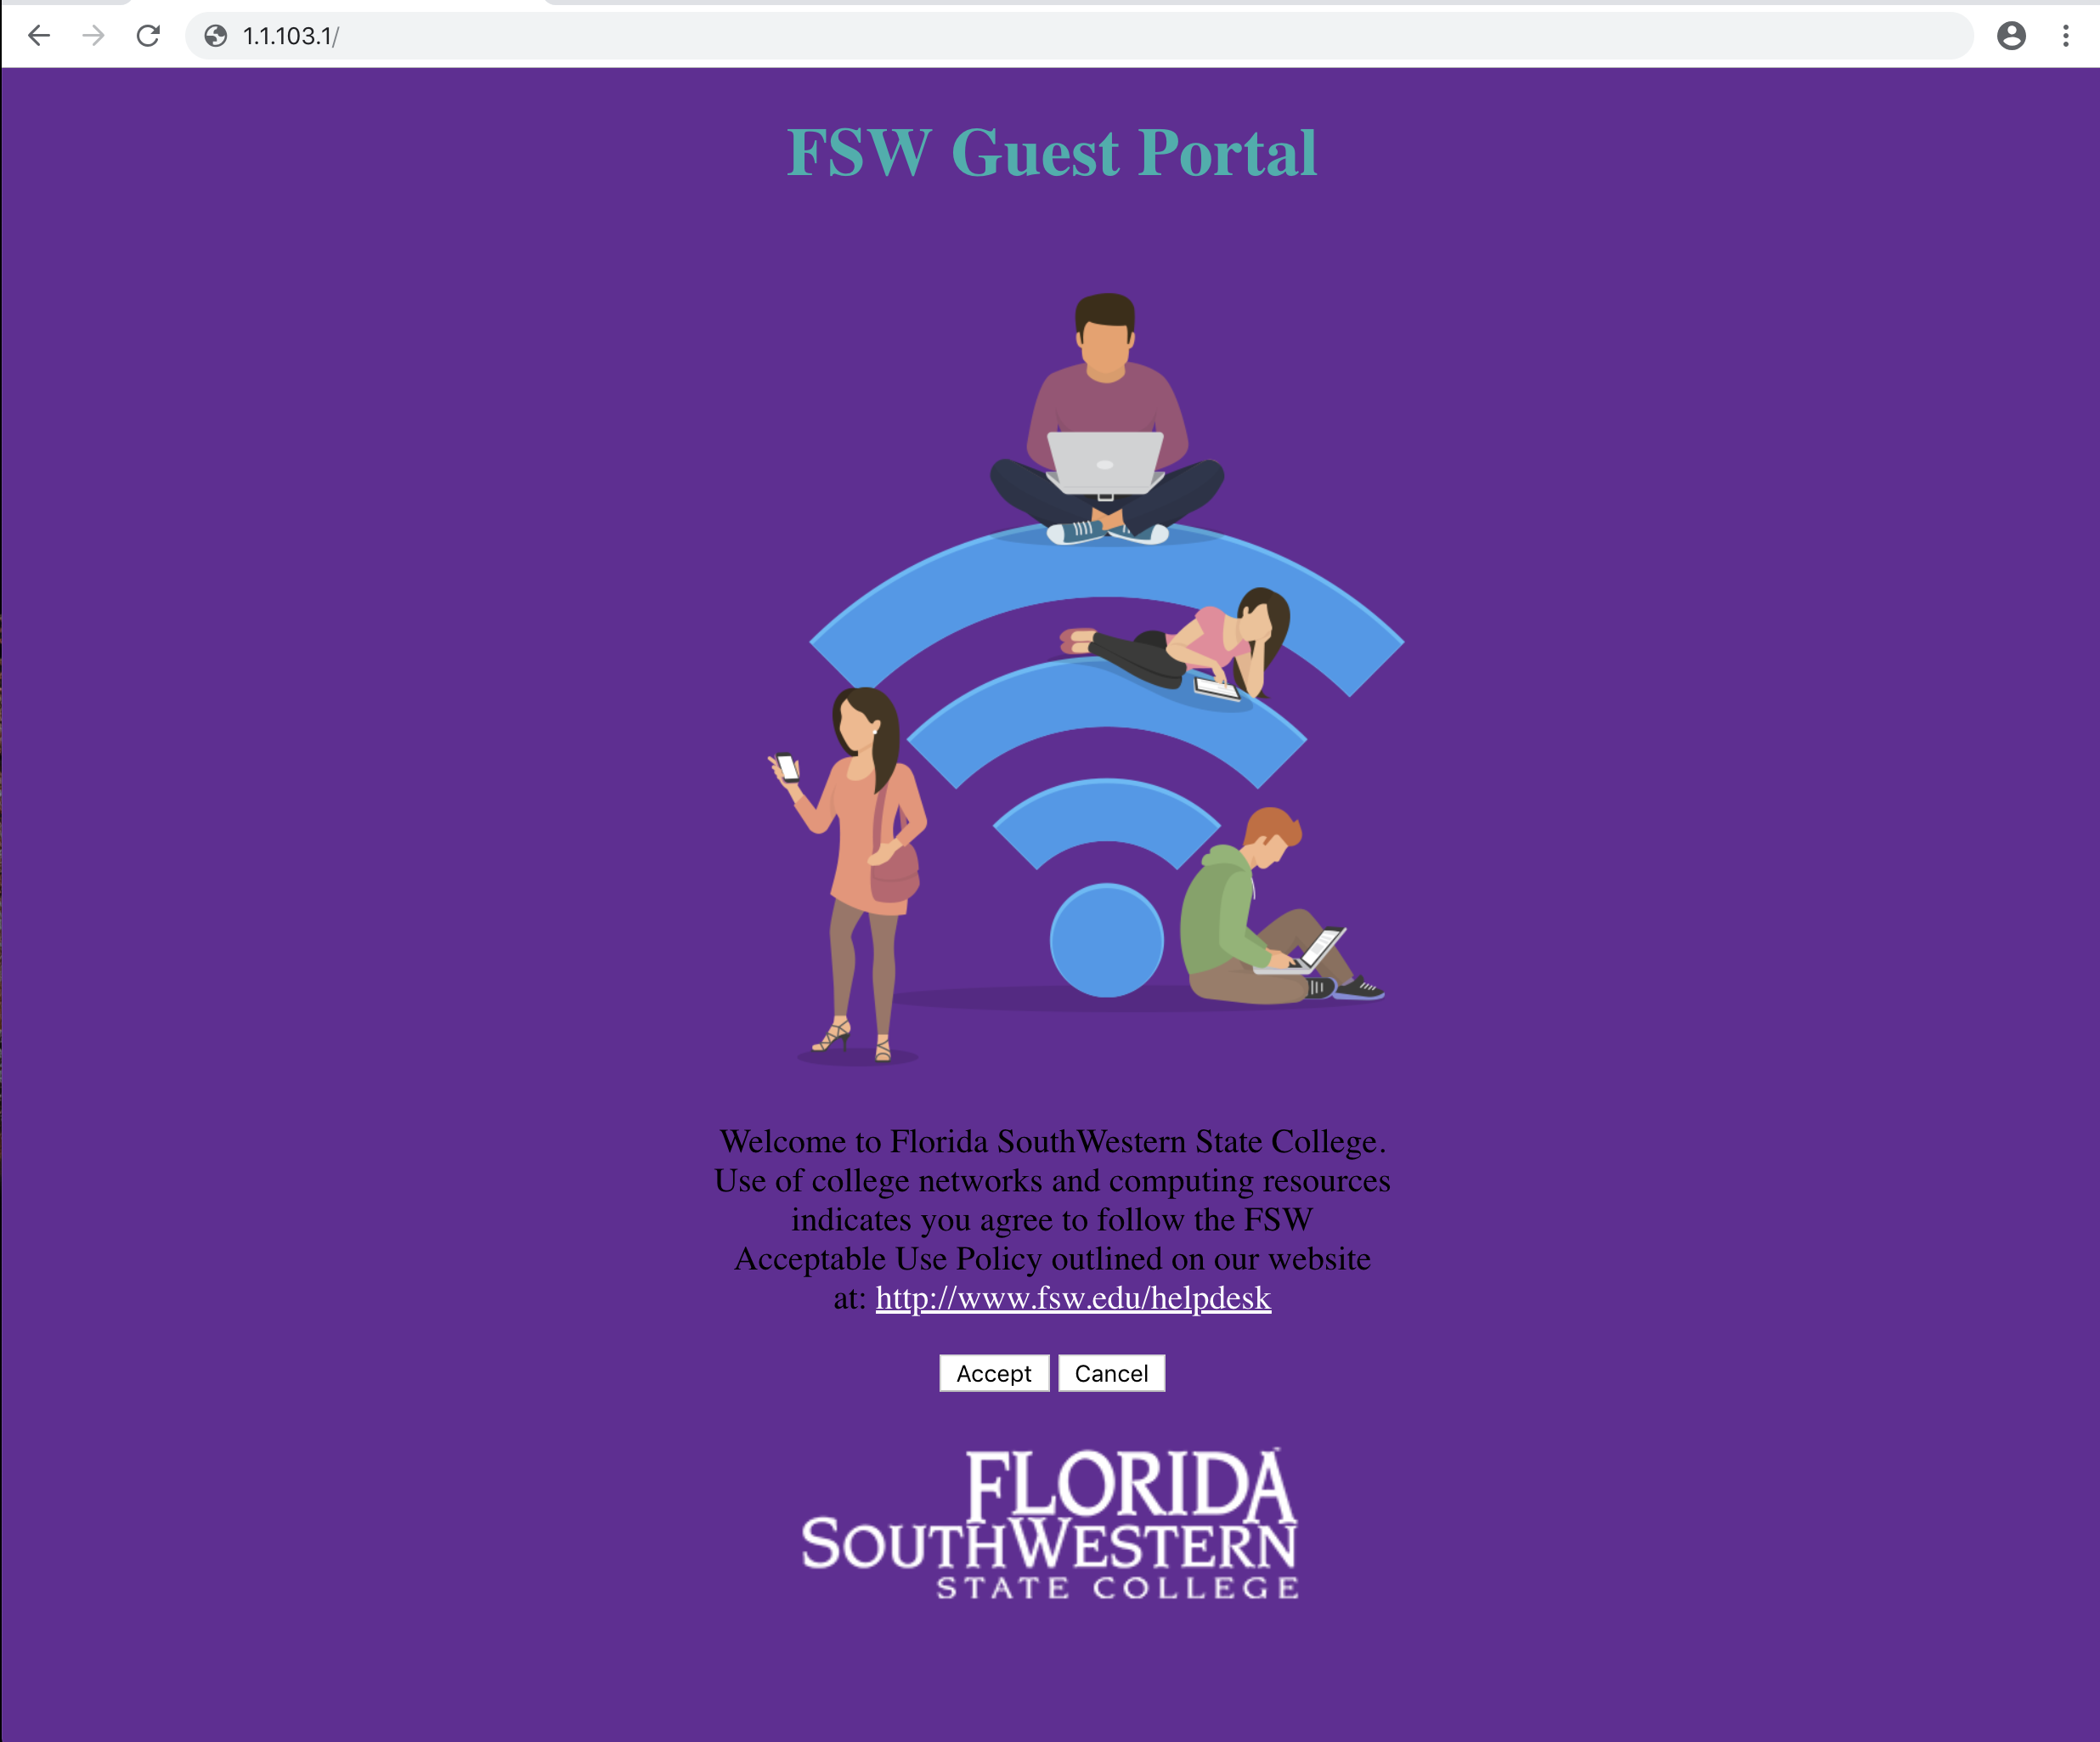 Image showing the FSW Guest Portal Page